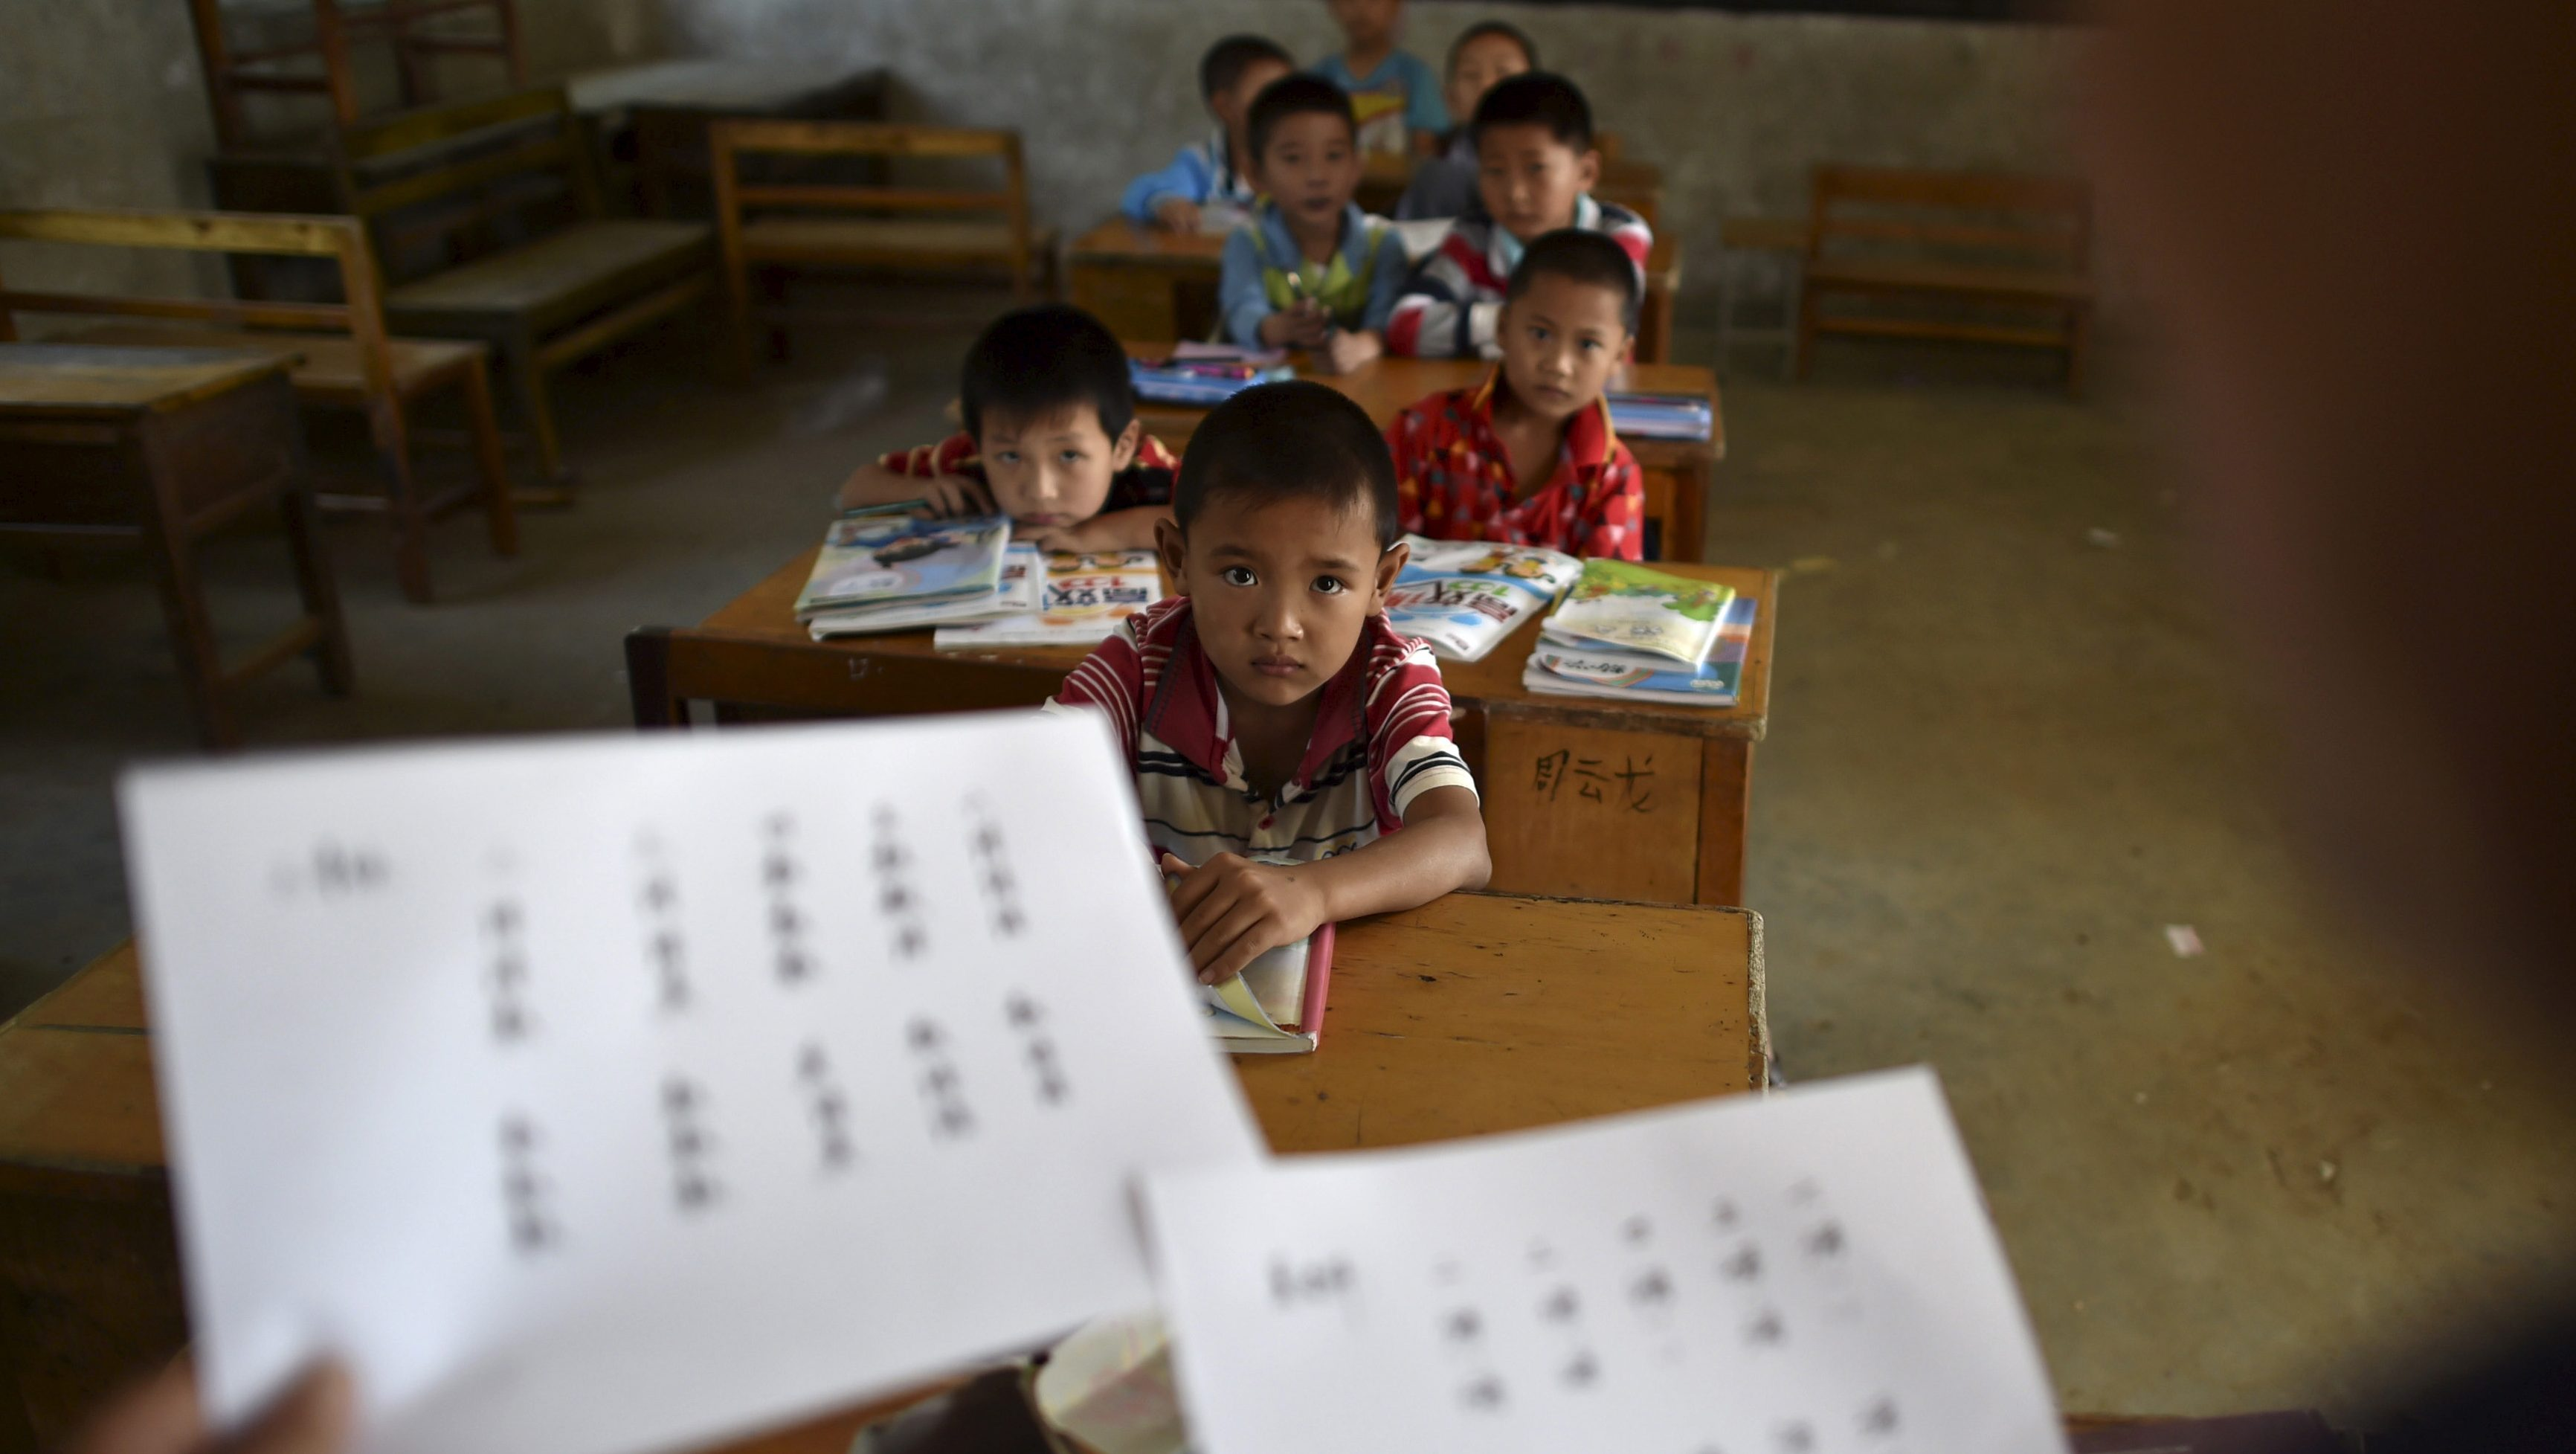 A Chinese fourth grader's heartbreaking essay to her abusive